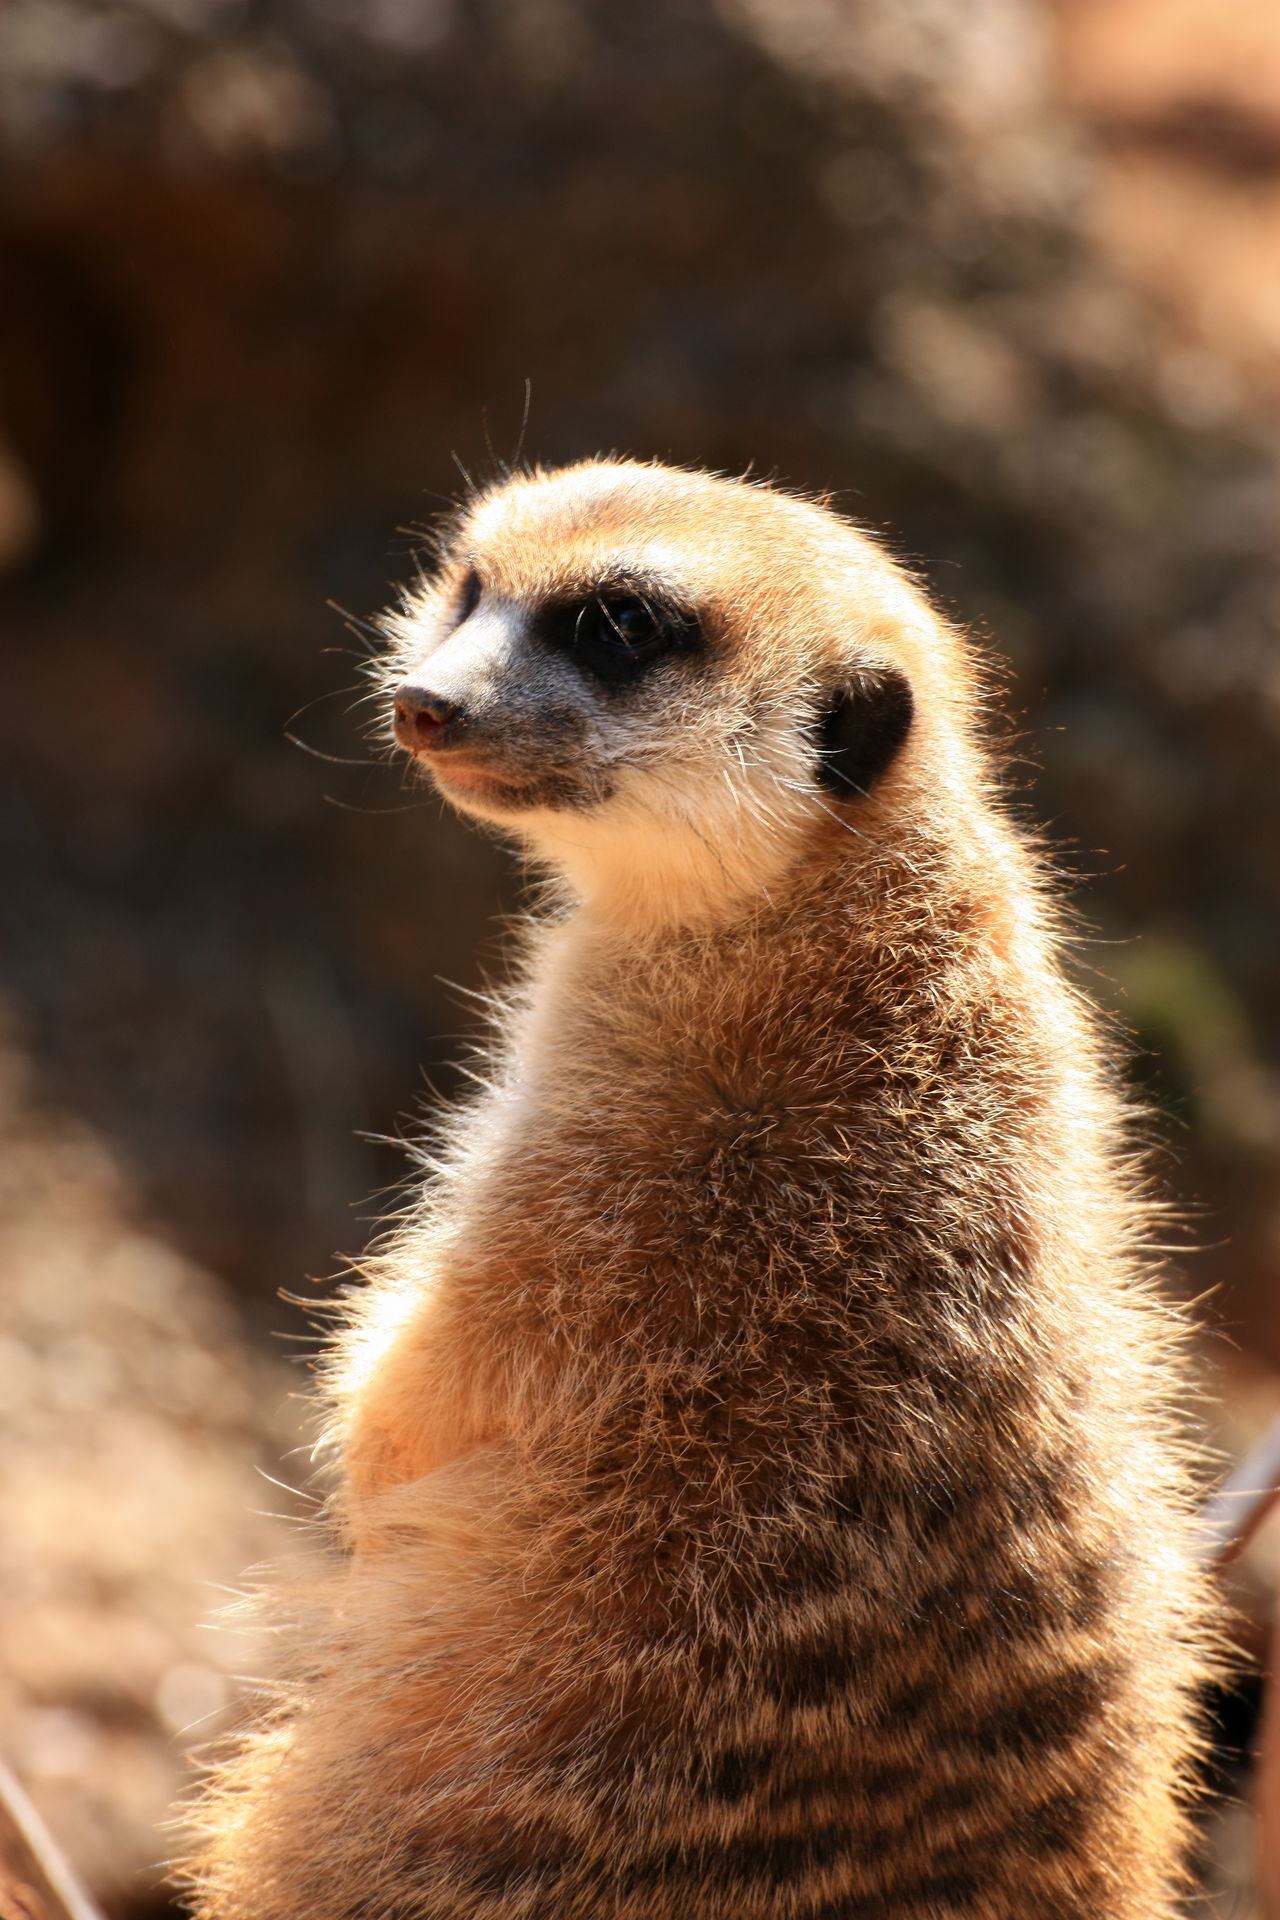 Animal Themes Animal Wildlife Animals In The Wild Close-up Day Focus On Foreground Mammal Meercat  Nature No People One Animal Outdoors Portrait Wildlife Reserve Meerkat